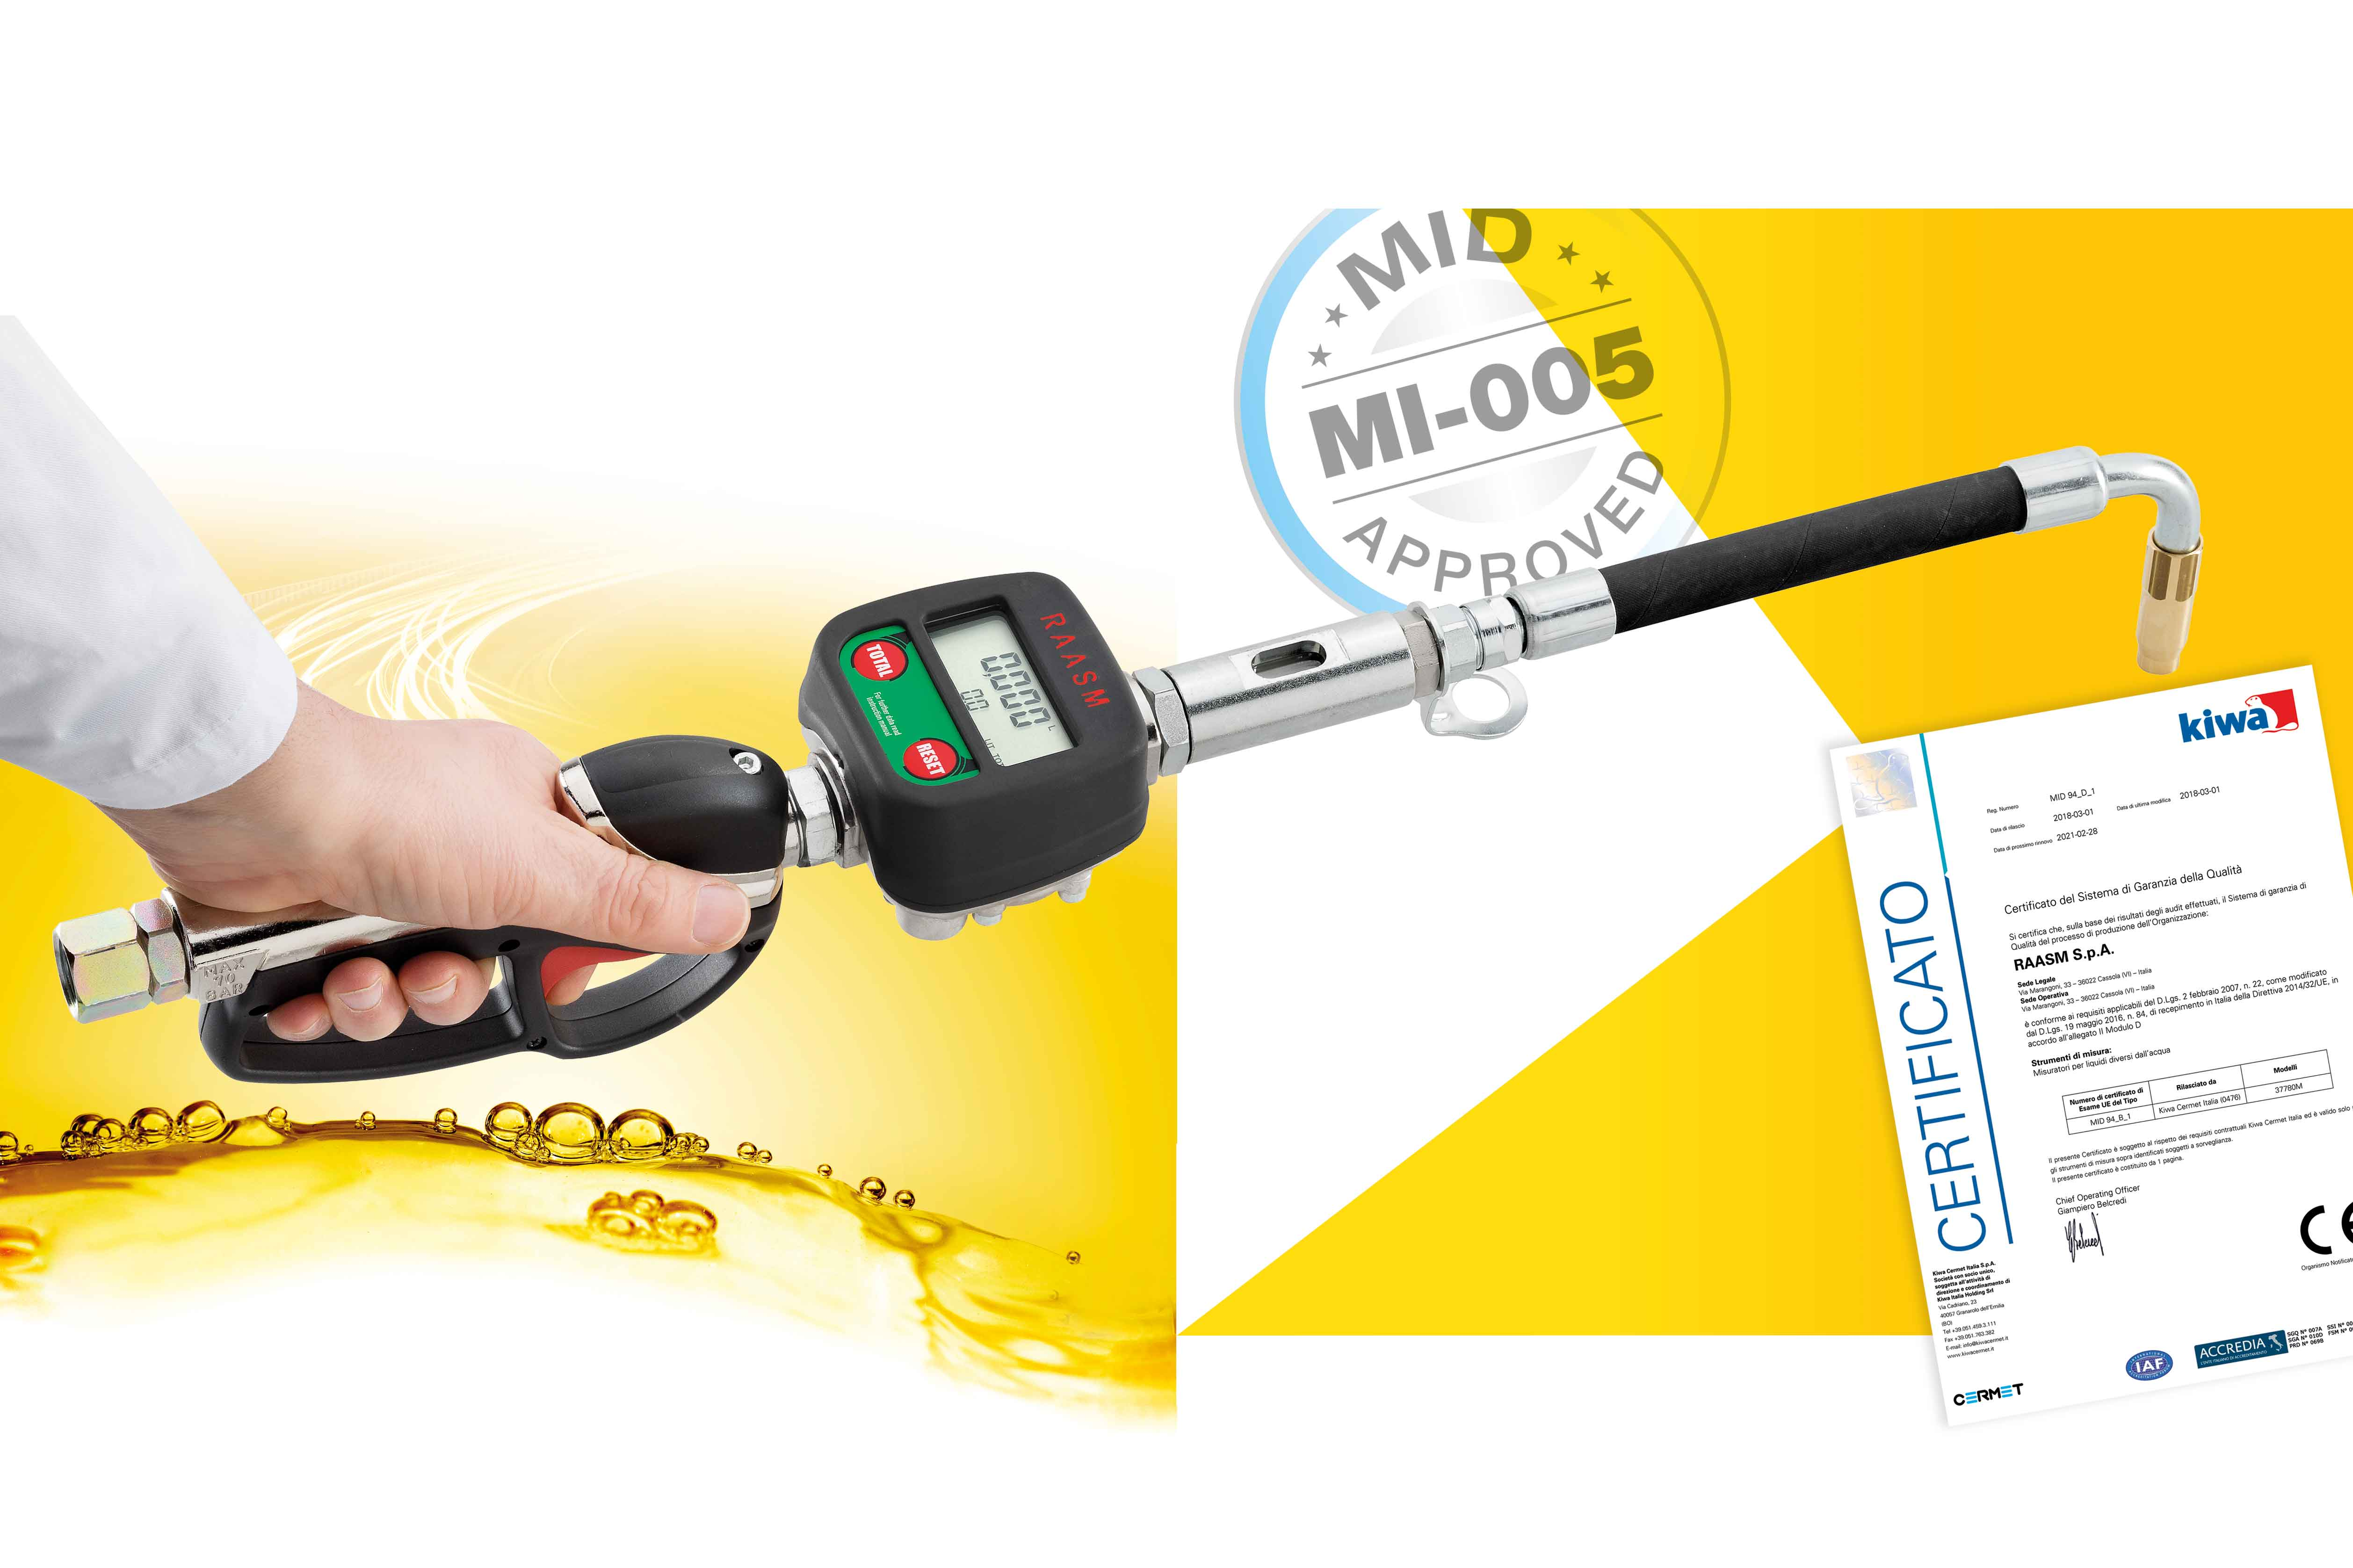 ENTER YOURSELF TOO IN THE MID WORLD WITH THE NEW RAASM DIGITAL METERS